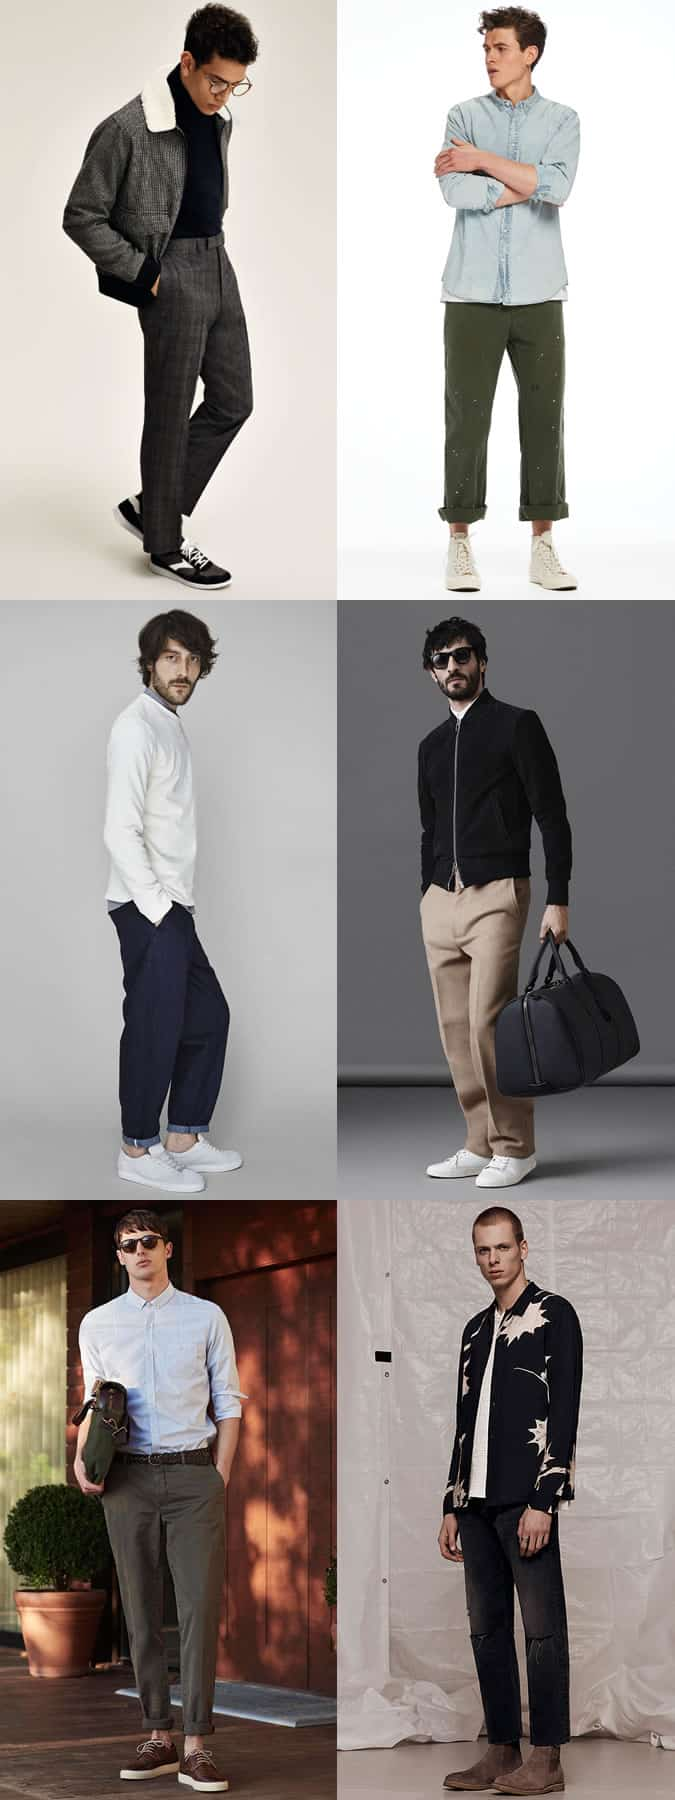 Men's Wide and Relaxed Leg Trousers/Chinos/Jeans Fashion Outfit Inspiration Lookbook